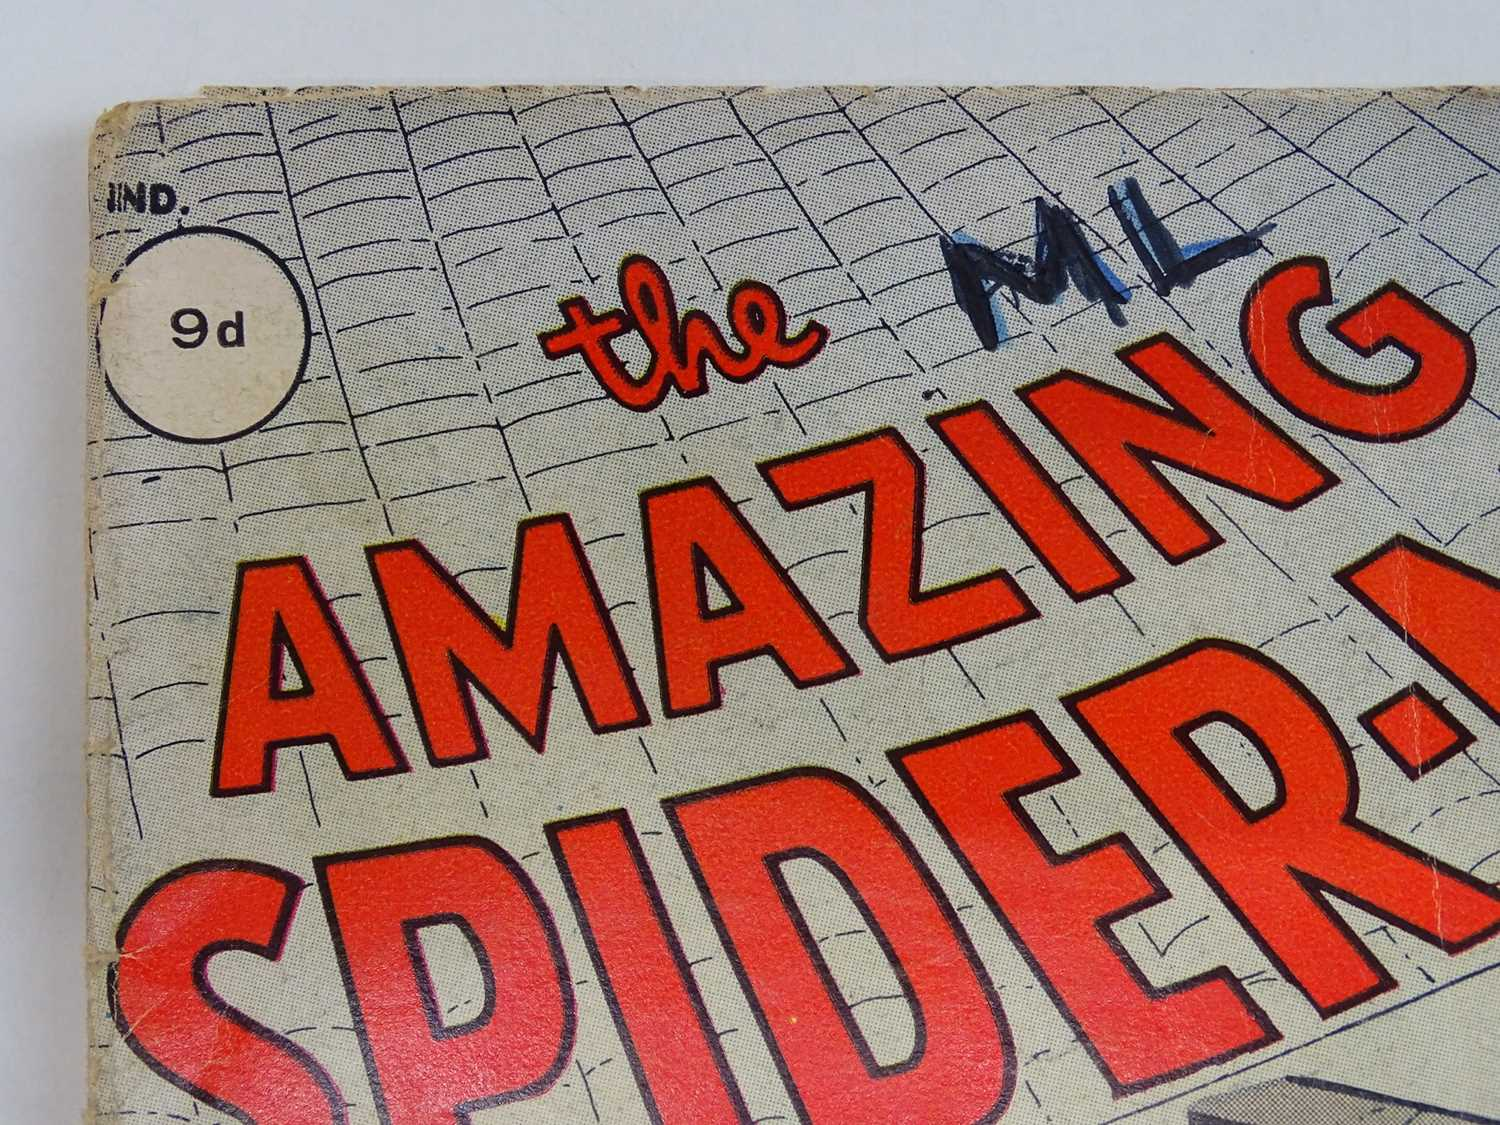 AMAZING SPIDER-MAN #1 - (1963 - MARVEL - UK Price Variant) - First appearance of Spider-Man un his - Image 2 of 27